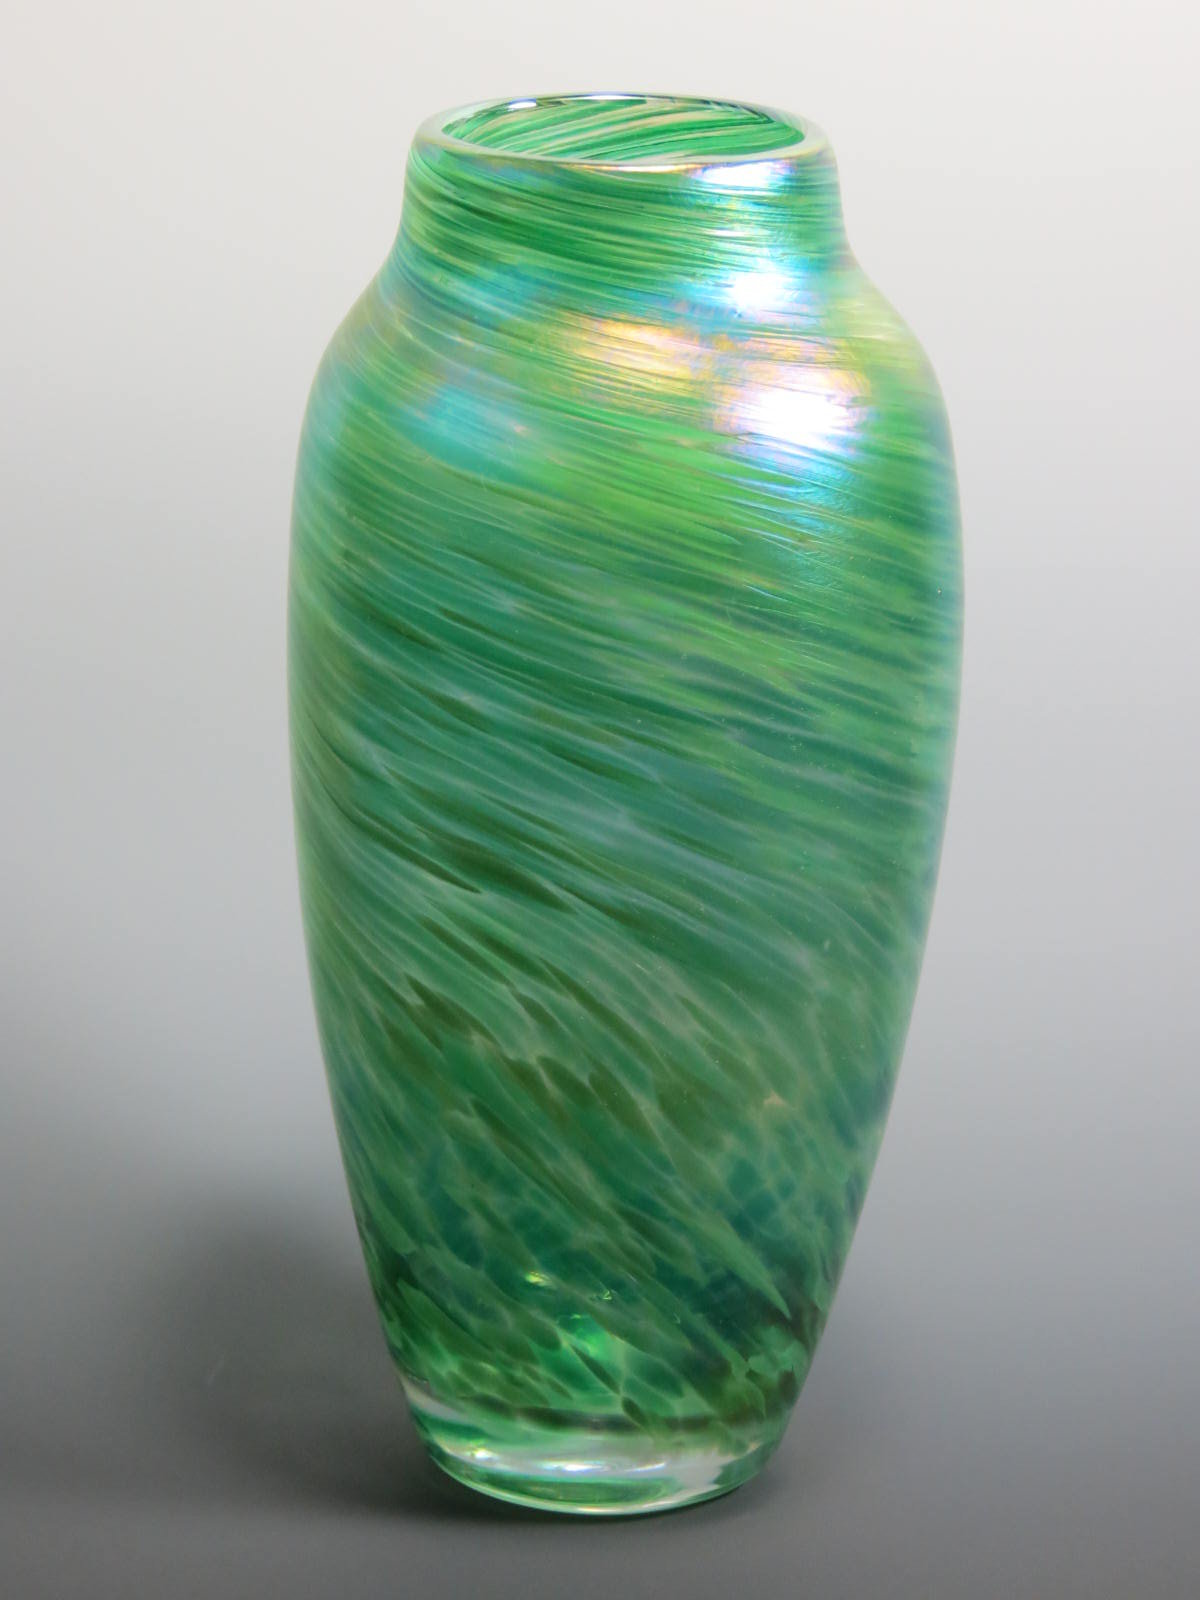 Green Spun Vase By Mark Rosenbaum Art Glass Vase